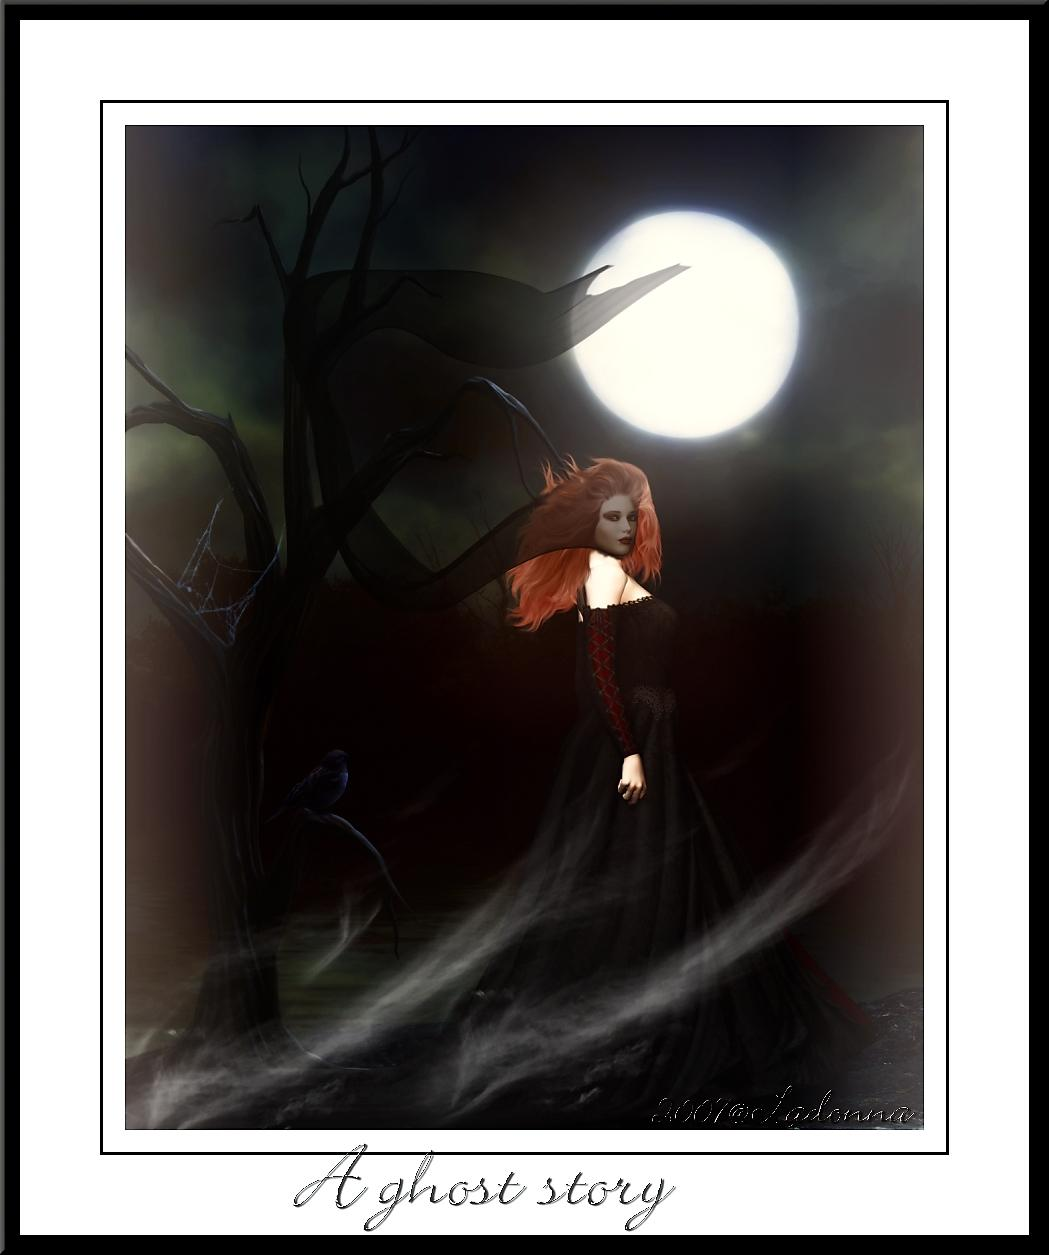 A ghost story by Ladonna